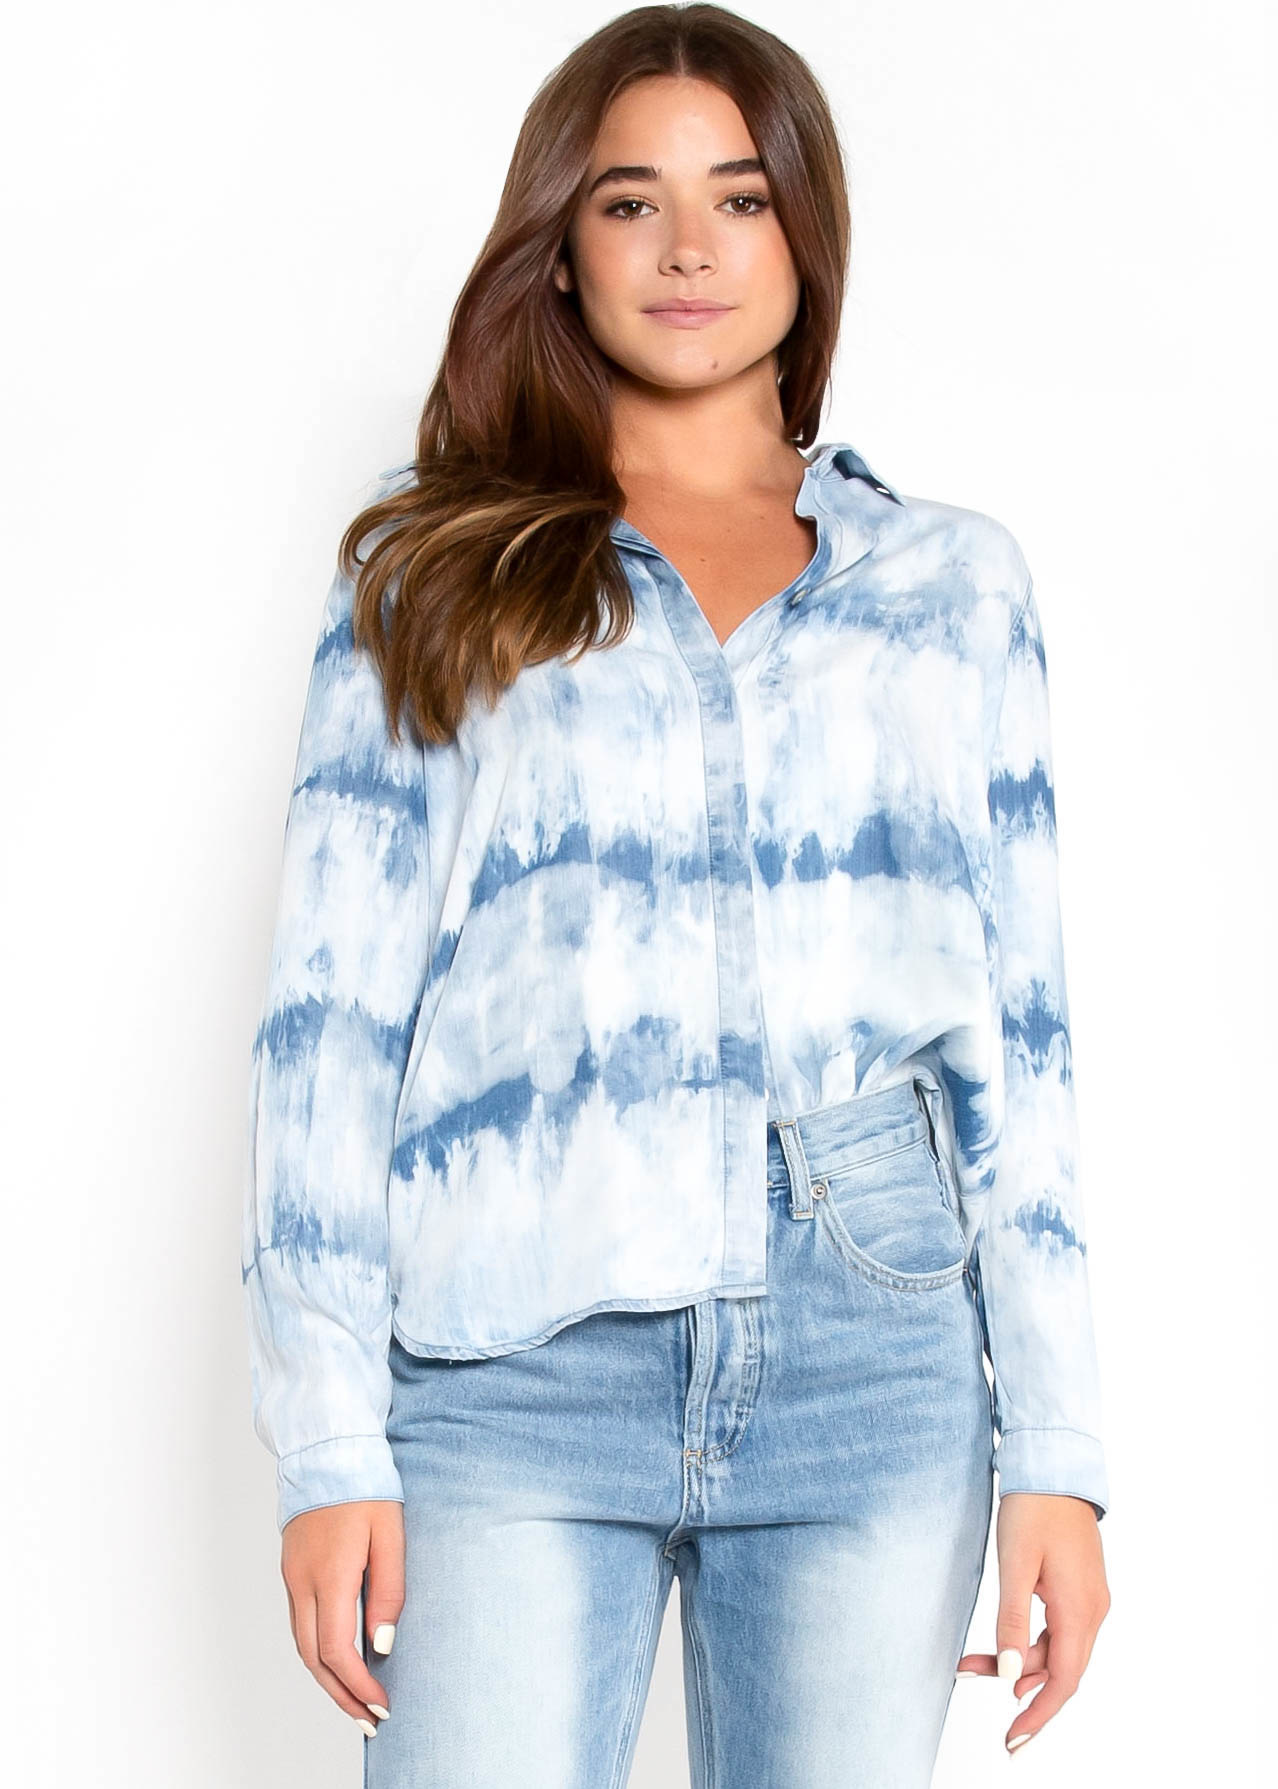 OUR MOMENT TIE DYE BUTTON UP